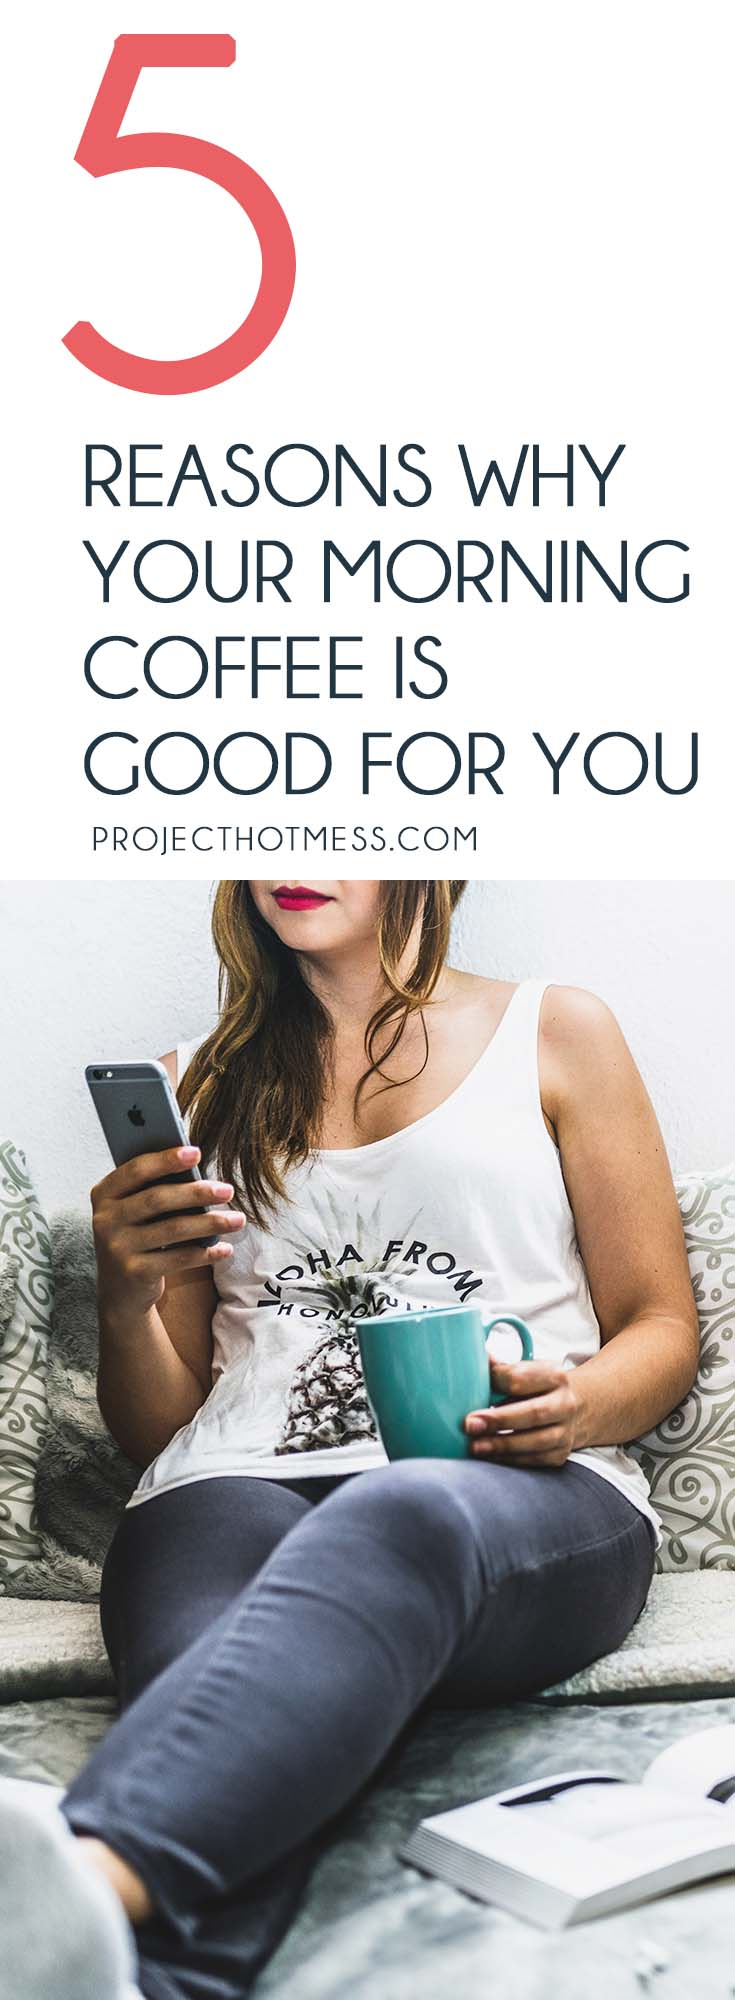 As much as I love my morning coffee (more than I should) it's good to know that your coffee is good for you. The health benefits are proven, check them out. Coffee   Coffee Addict   Coffee Is Good For You   Morning Coffee   Coffee Lover   Women's Health   Healthy   Health Benefits   Healthy Coffee